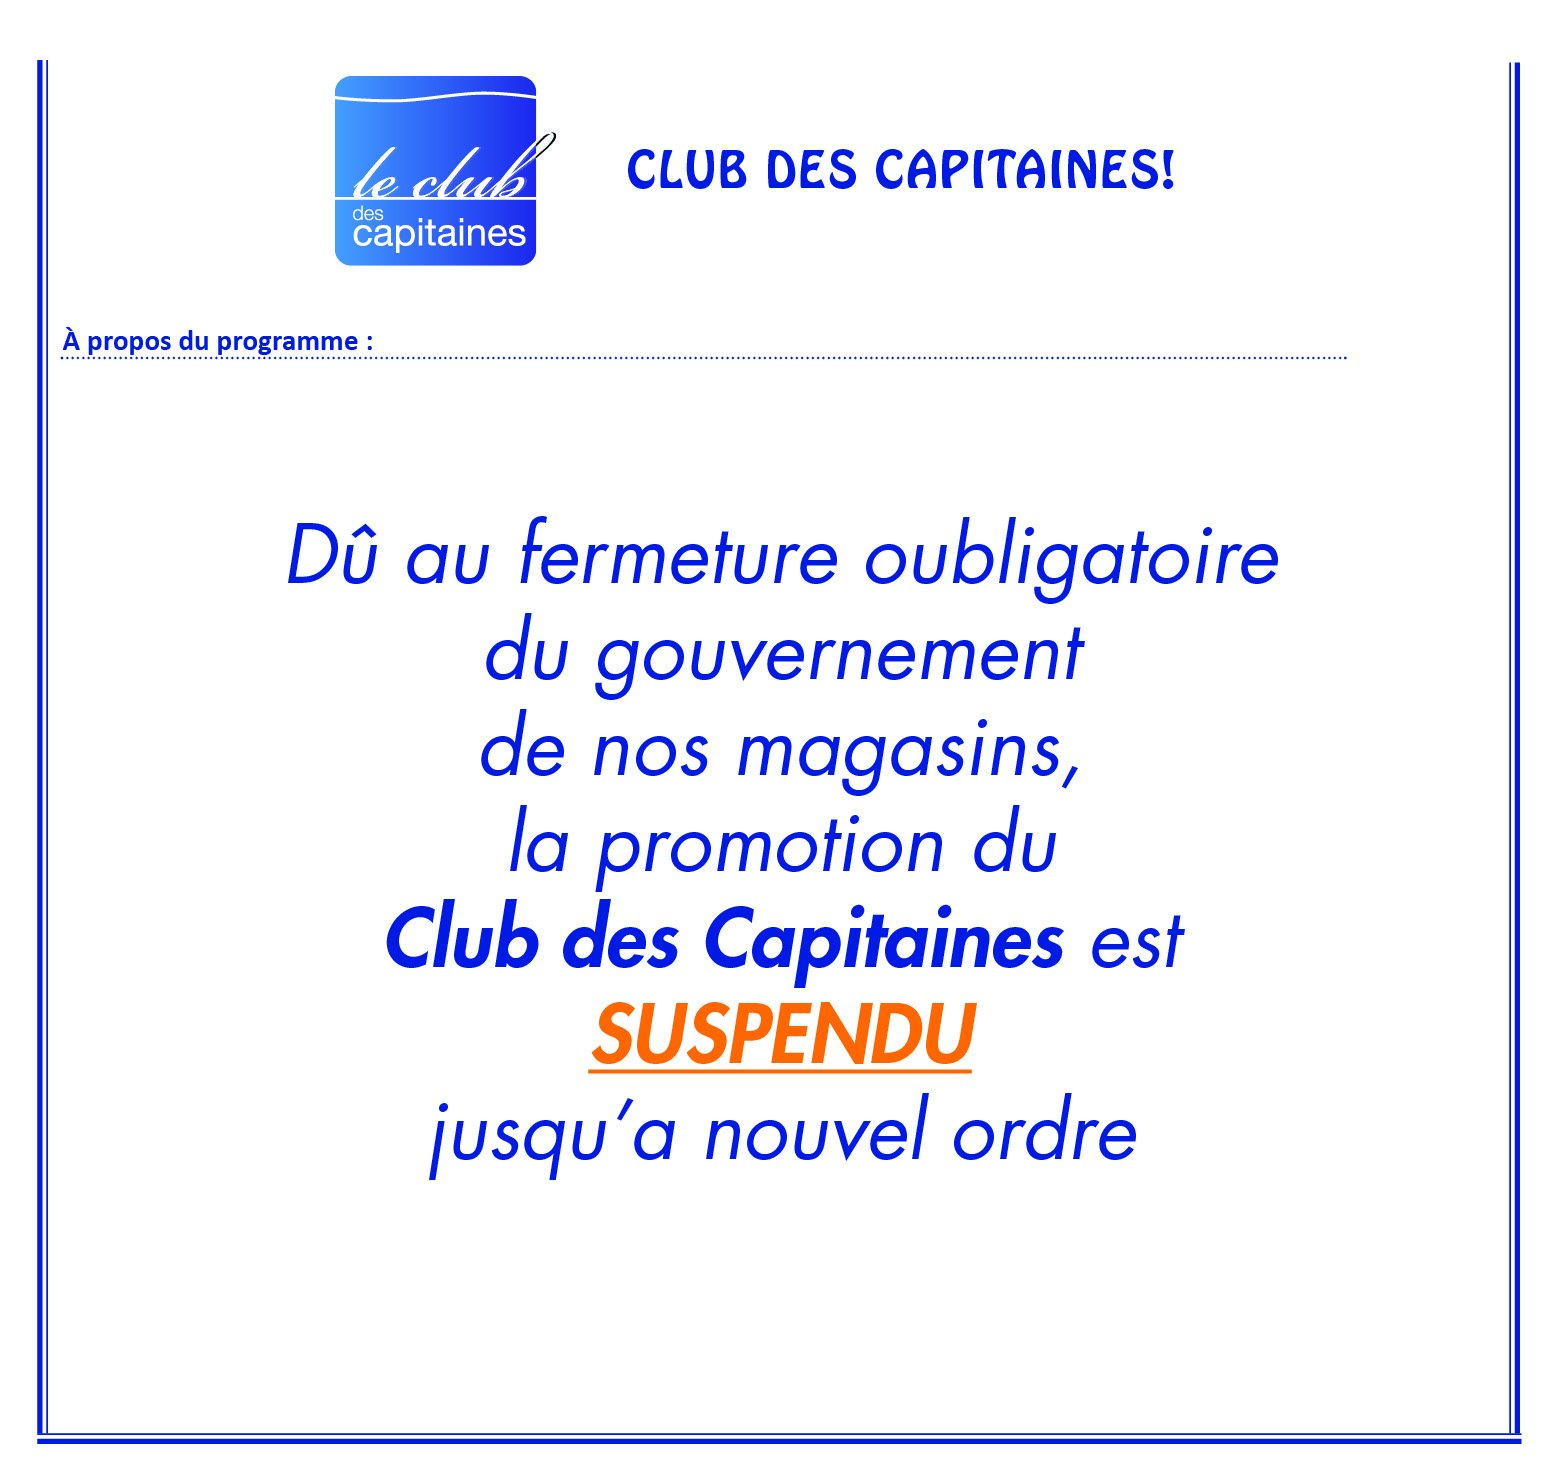 ClubCapitaines-SiteFR2021